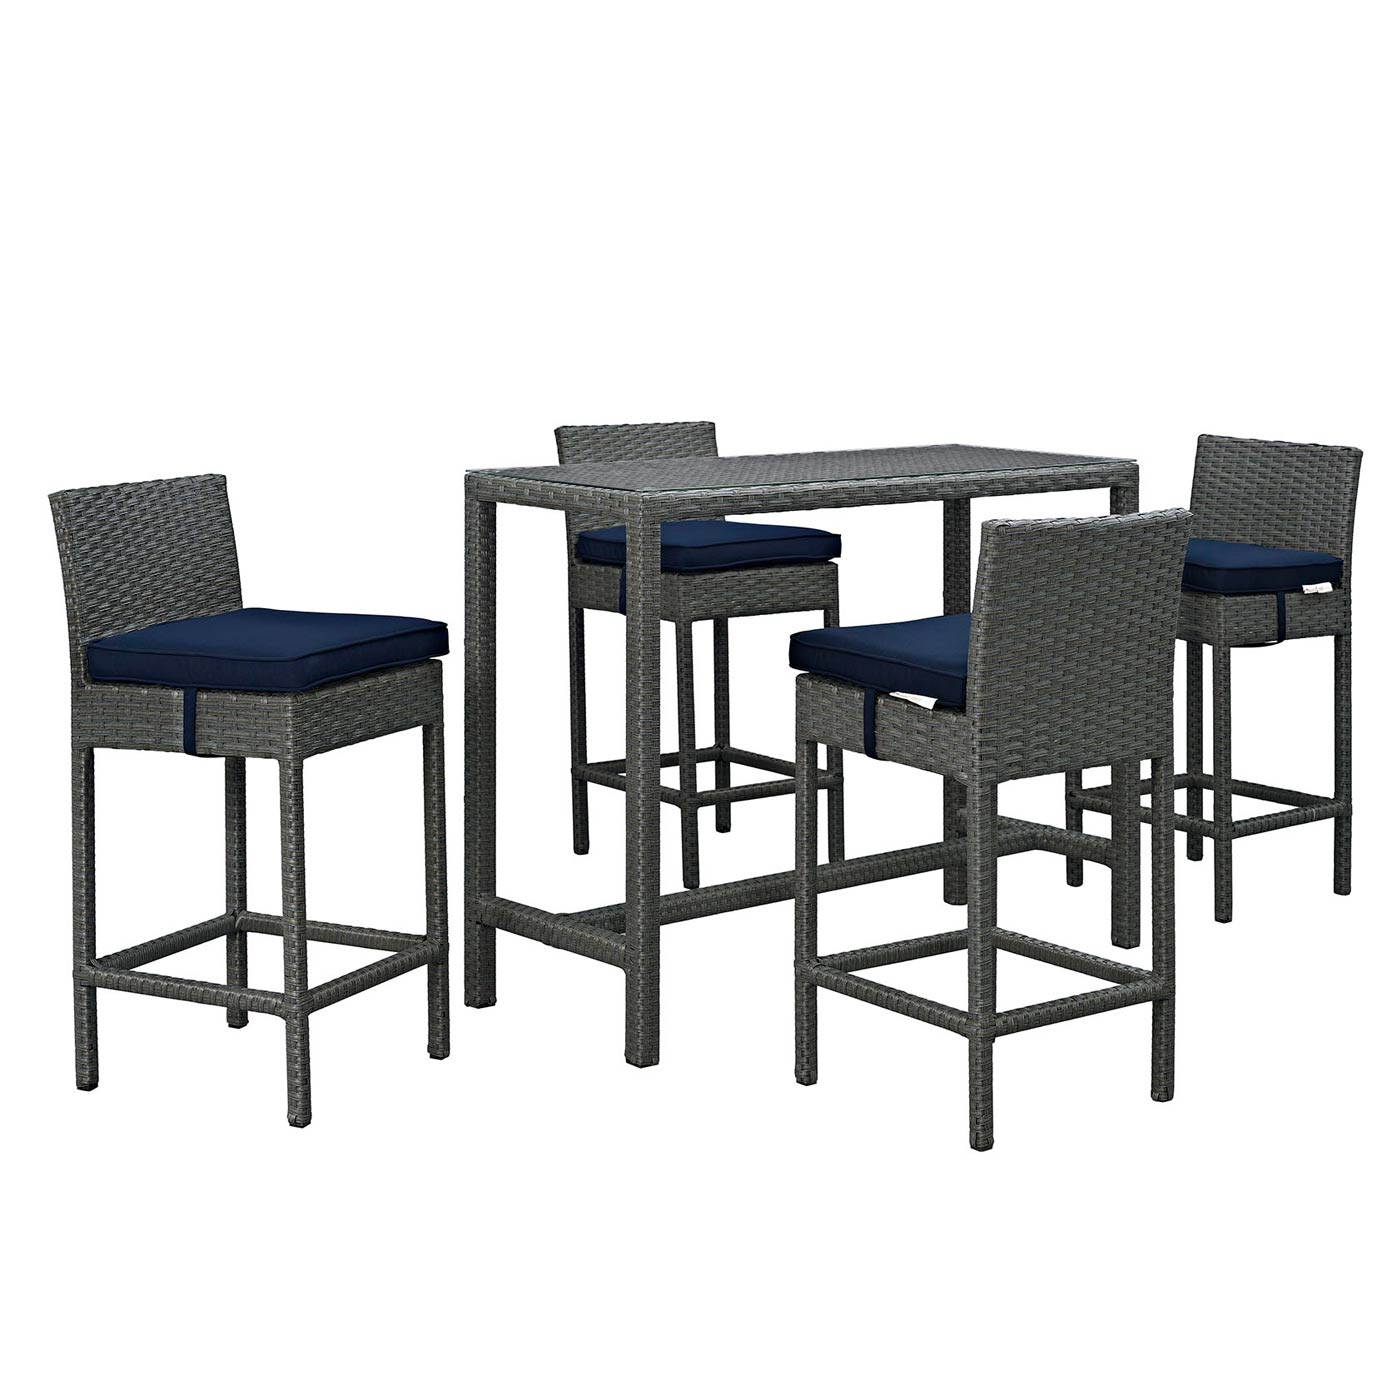 modway sojourn 5 piece outdoor patio bar height dining set